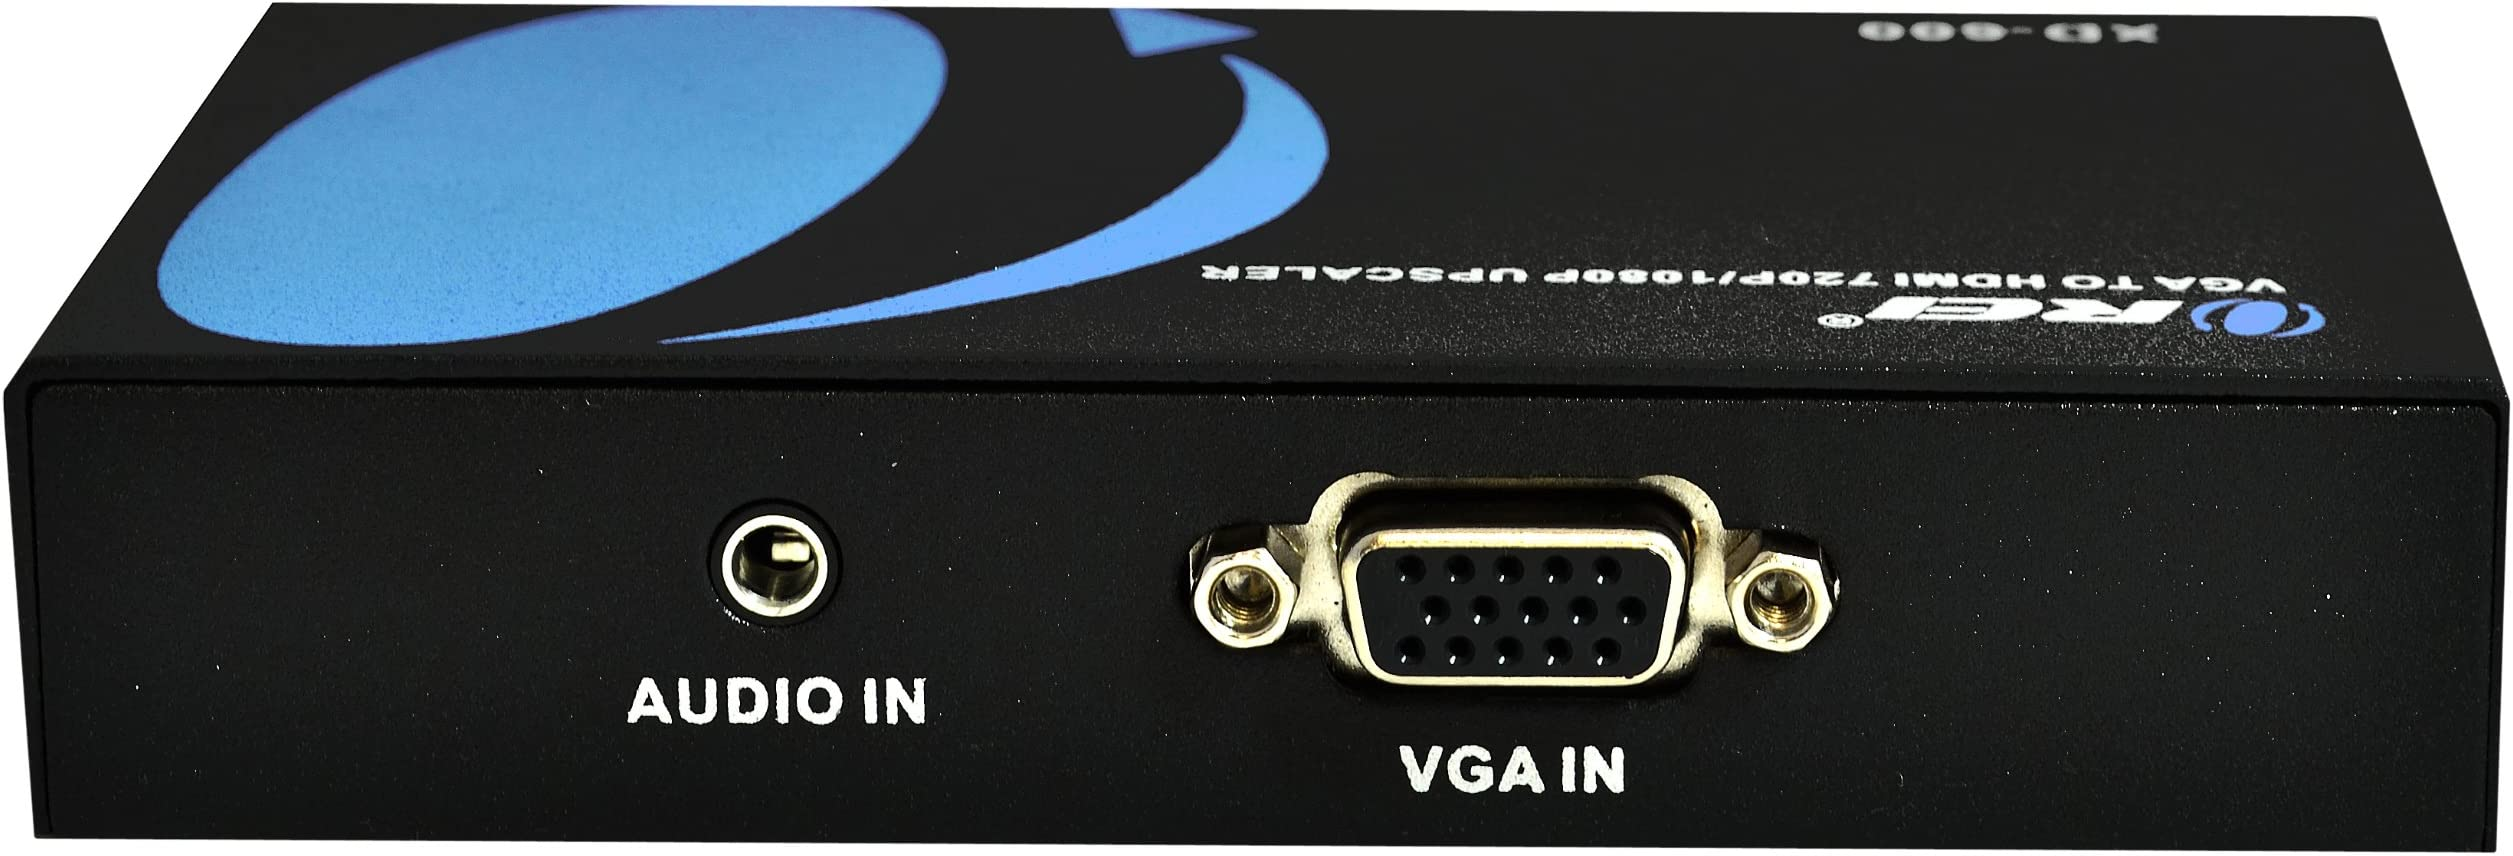 OREI XD-600 VGA PC/Laptop to HDMI Video Converter -Upscaler Up to 720P/1080P Converter with Audio Jack